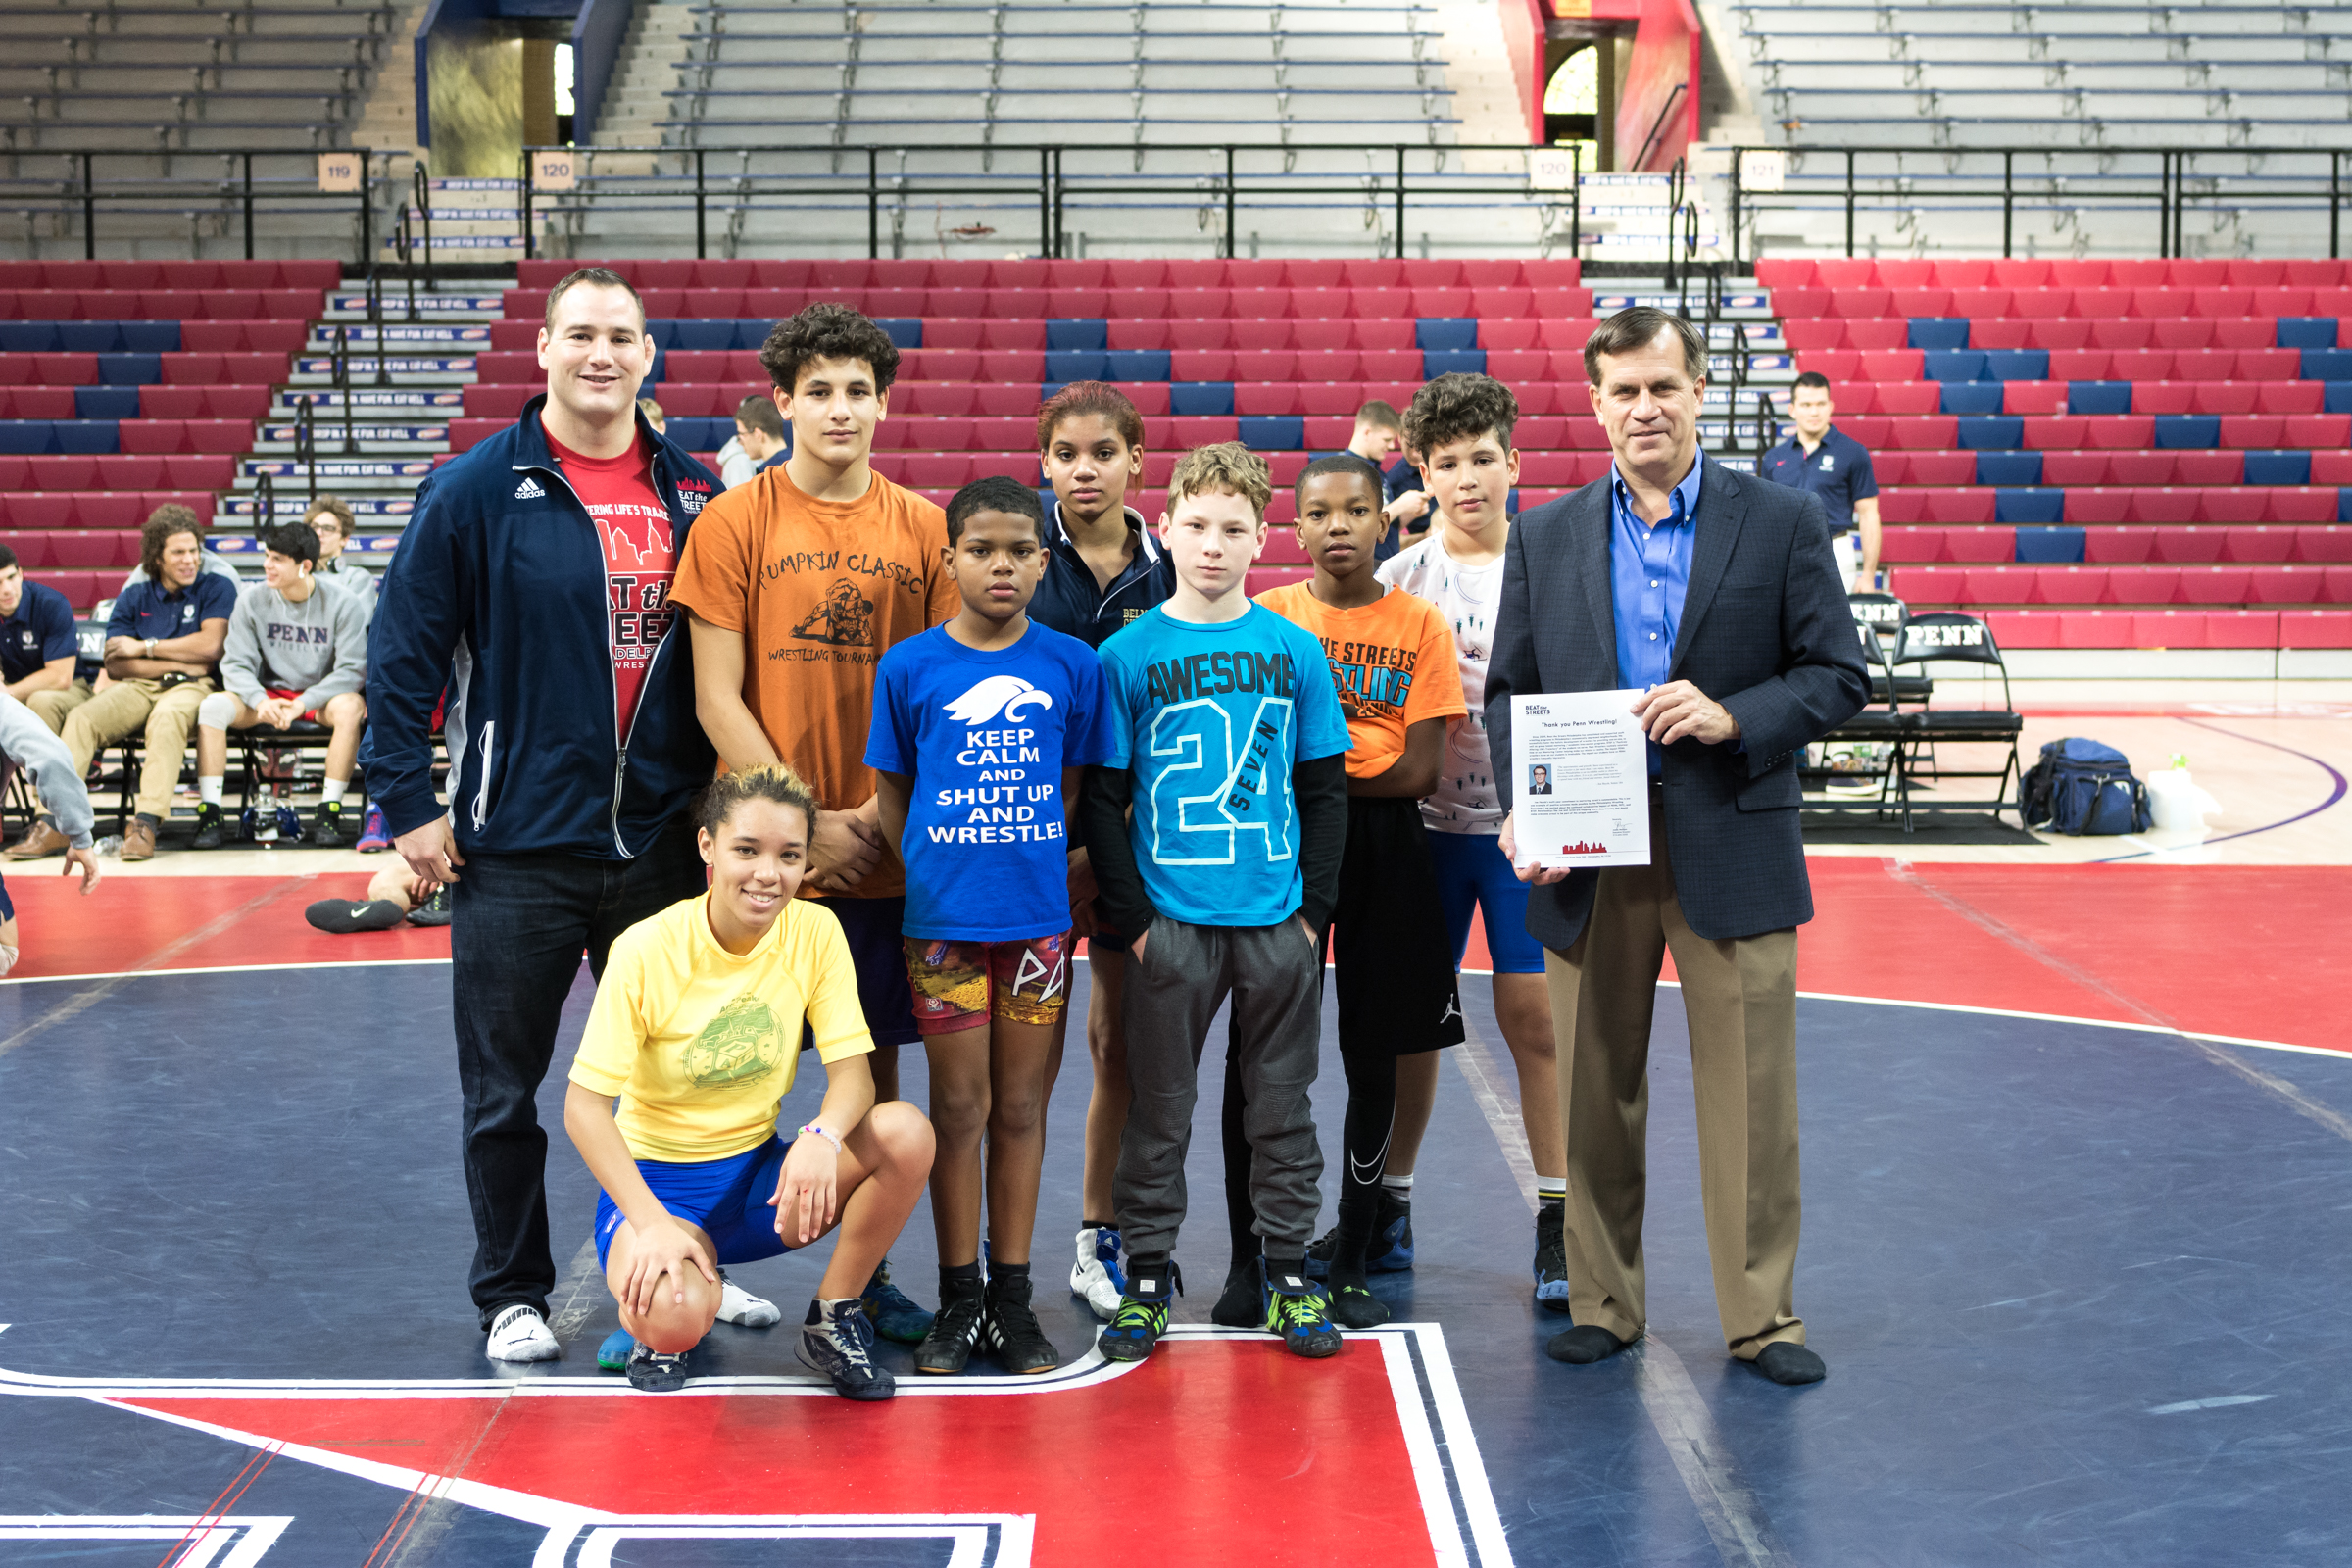 BTSP Wrestlers Compete at Penn Homecoming